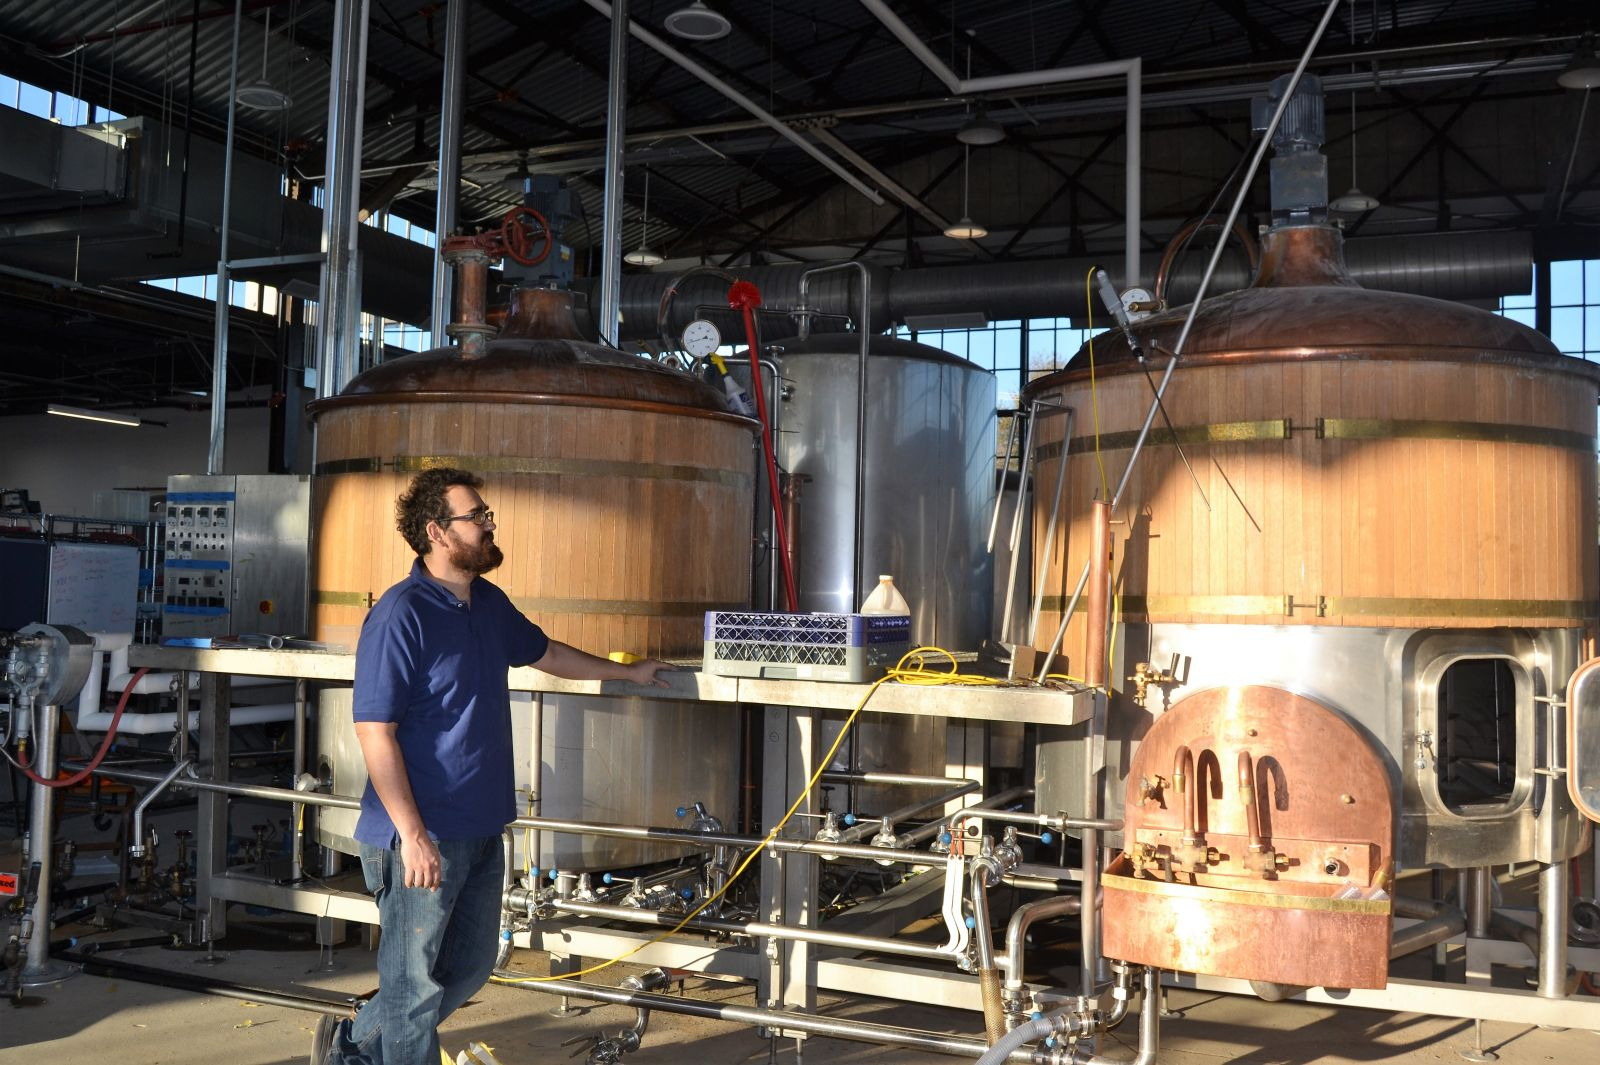 Kevin Varner hopes to open the second location of the Hunter-Gatherer brewery at the Curtiss-Wright Hangar on Dec. 21. (Photo/Melinda Waldrop)